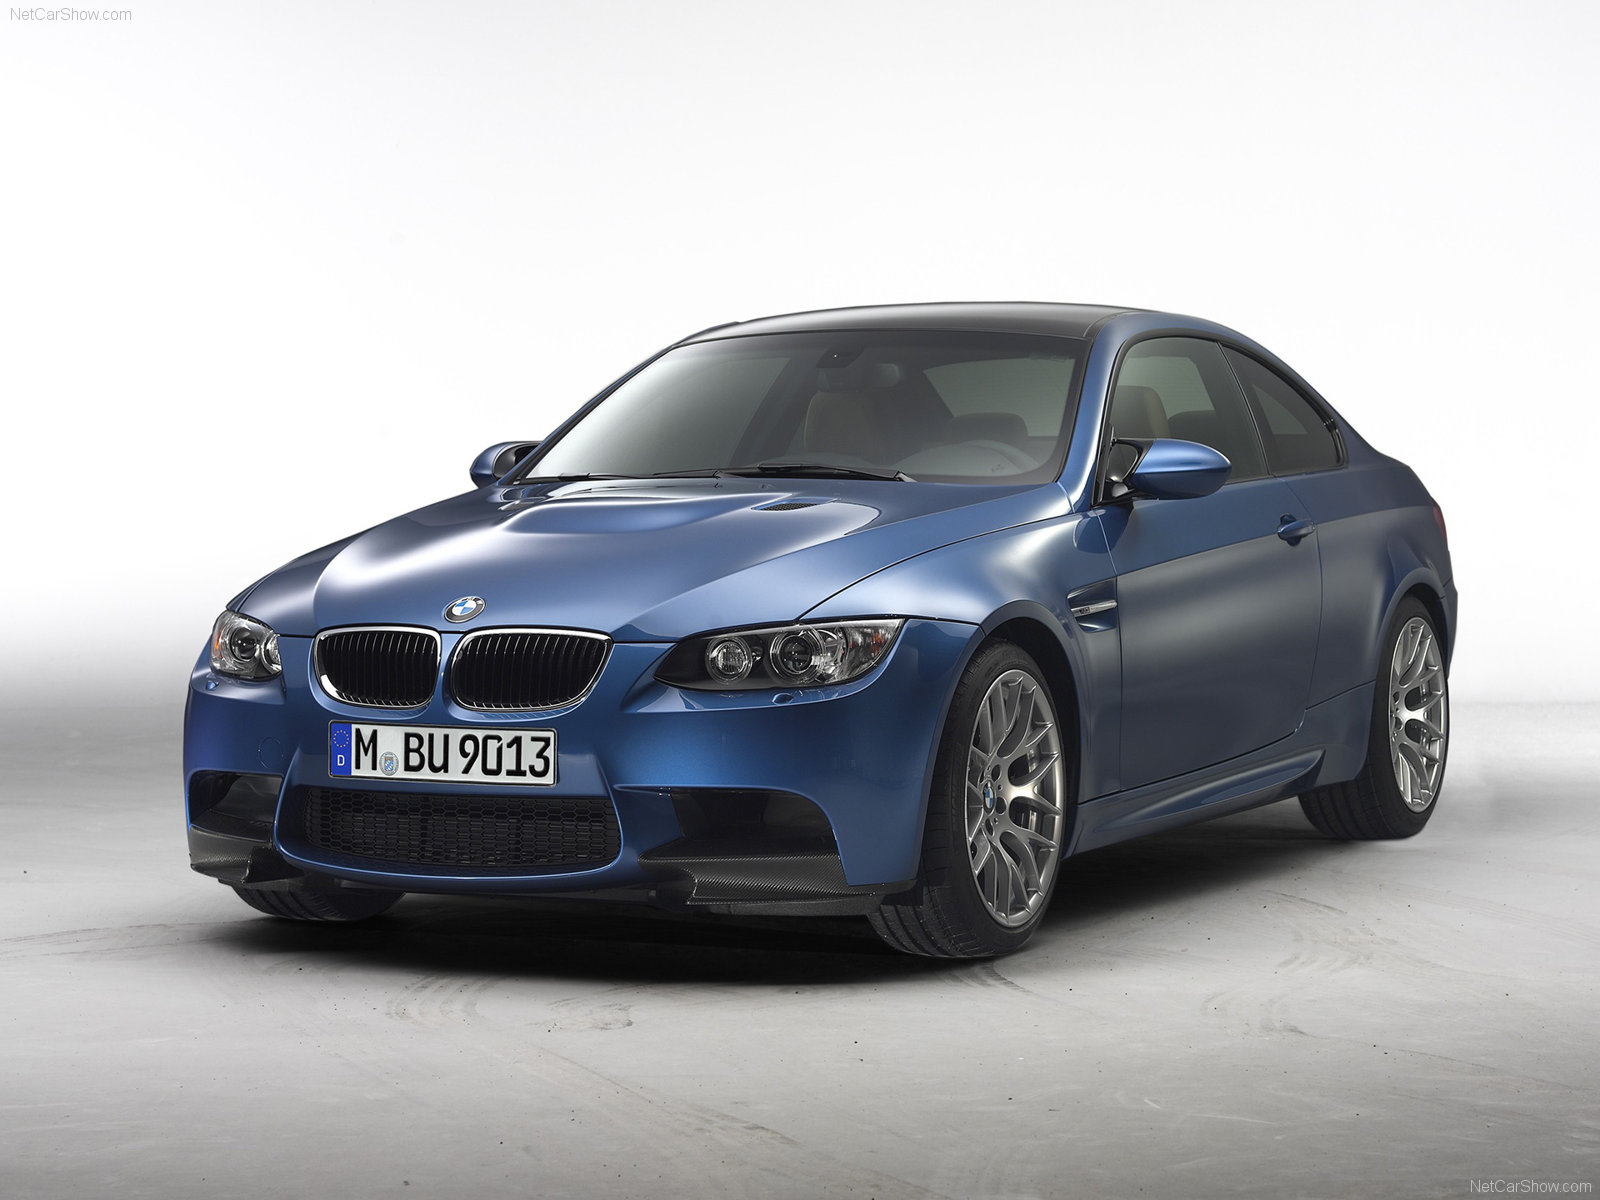 bmw serie 3 e92 coupe m3 essais fiabilit avis photos. Black Bedroom Furniture Sets. Home Design Ideas